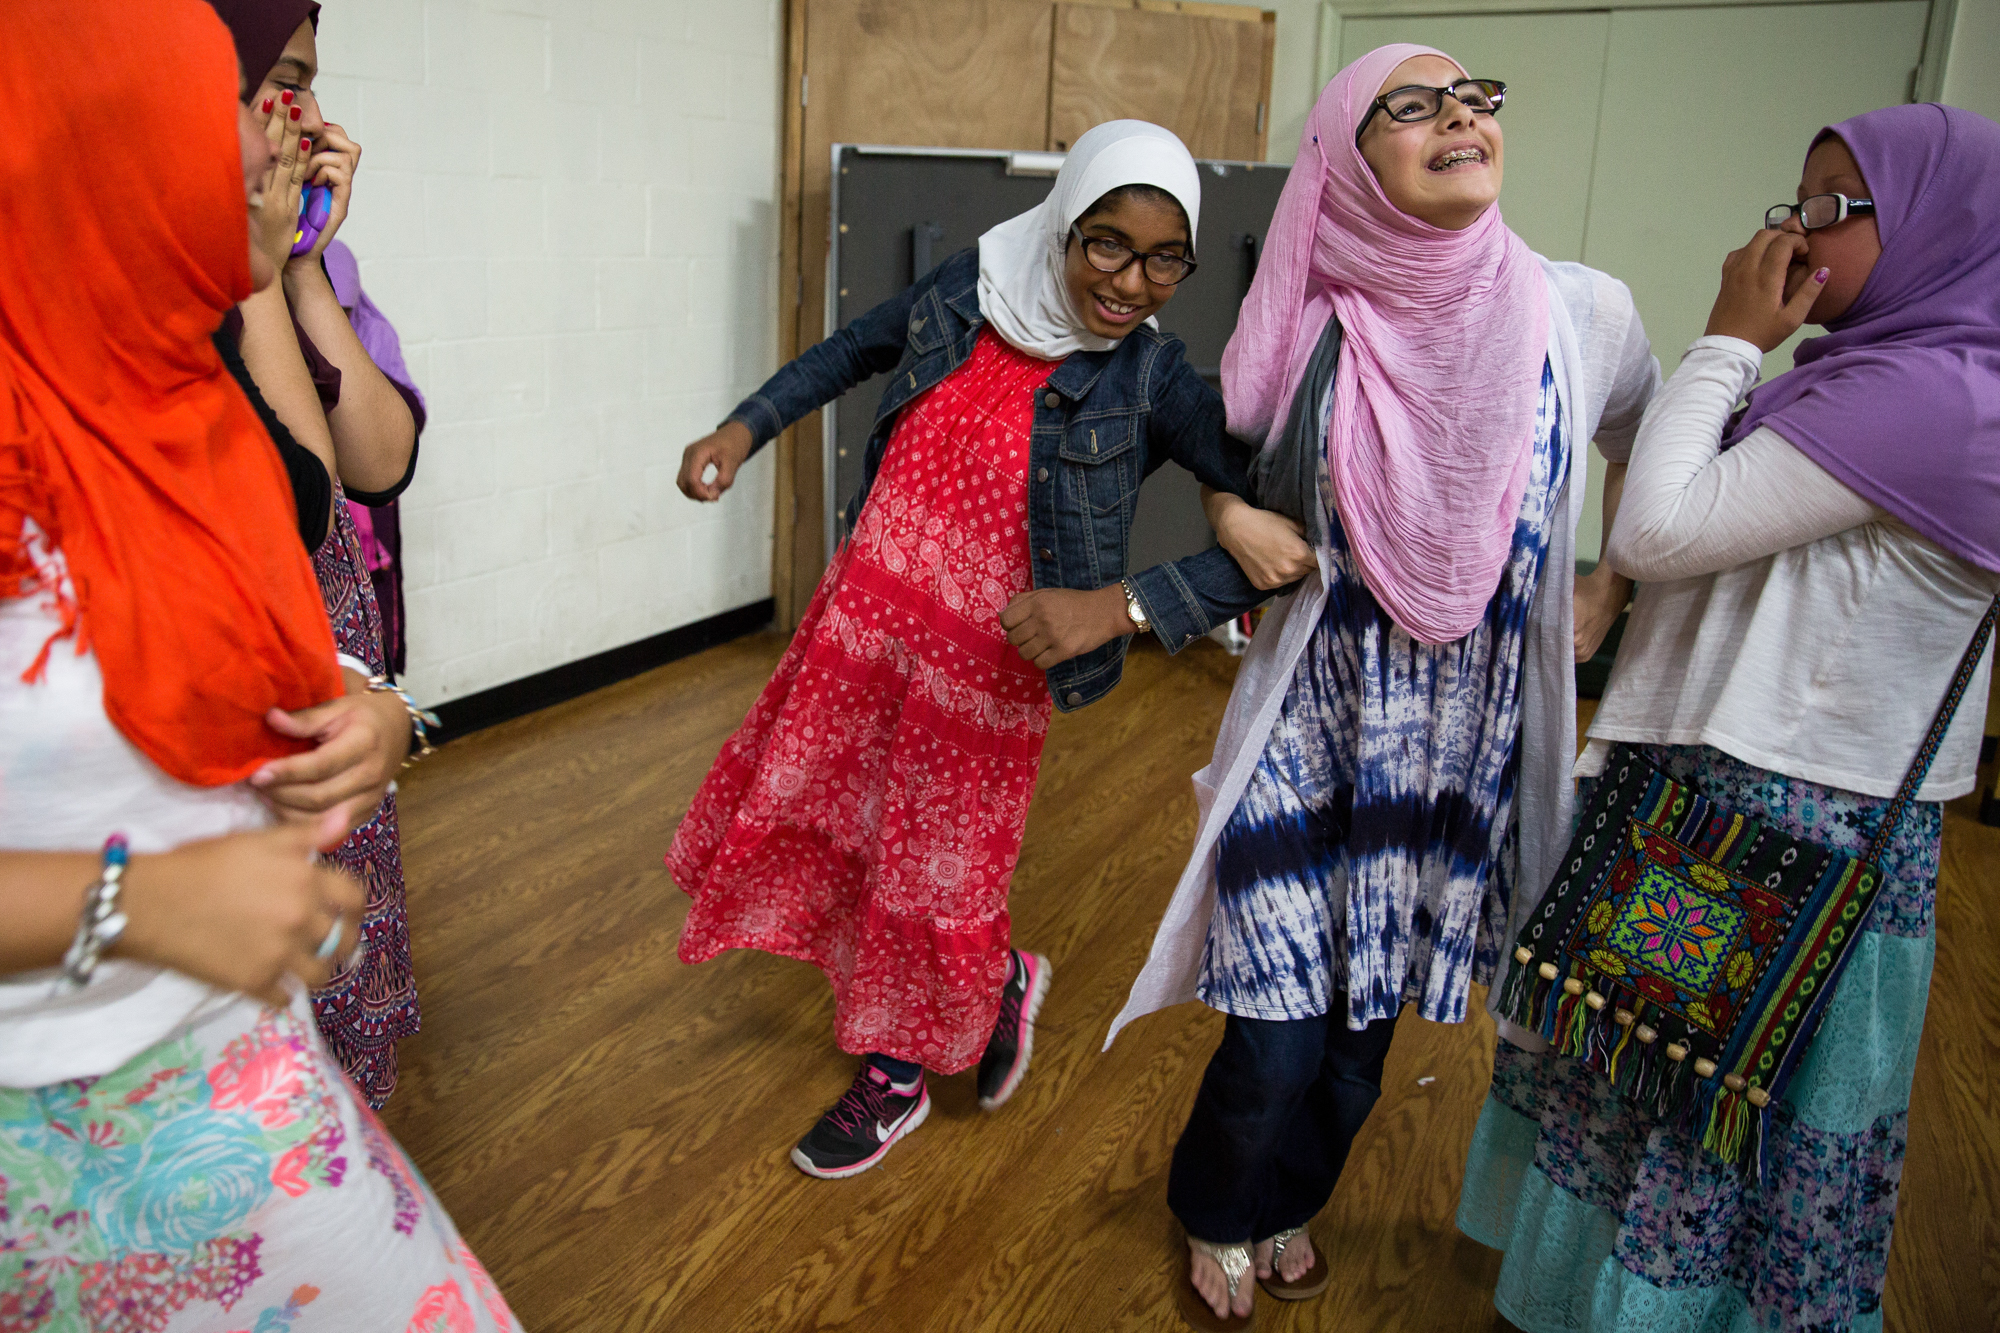 Zaineb, center, and Aisha Taghi, right, laugh and link arms during an event at the Masjid. Most of the girls go to different schools and only get to spend time together as a group at events organized by their mothers.